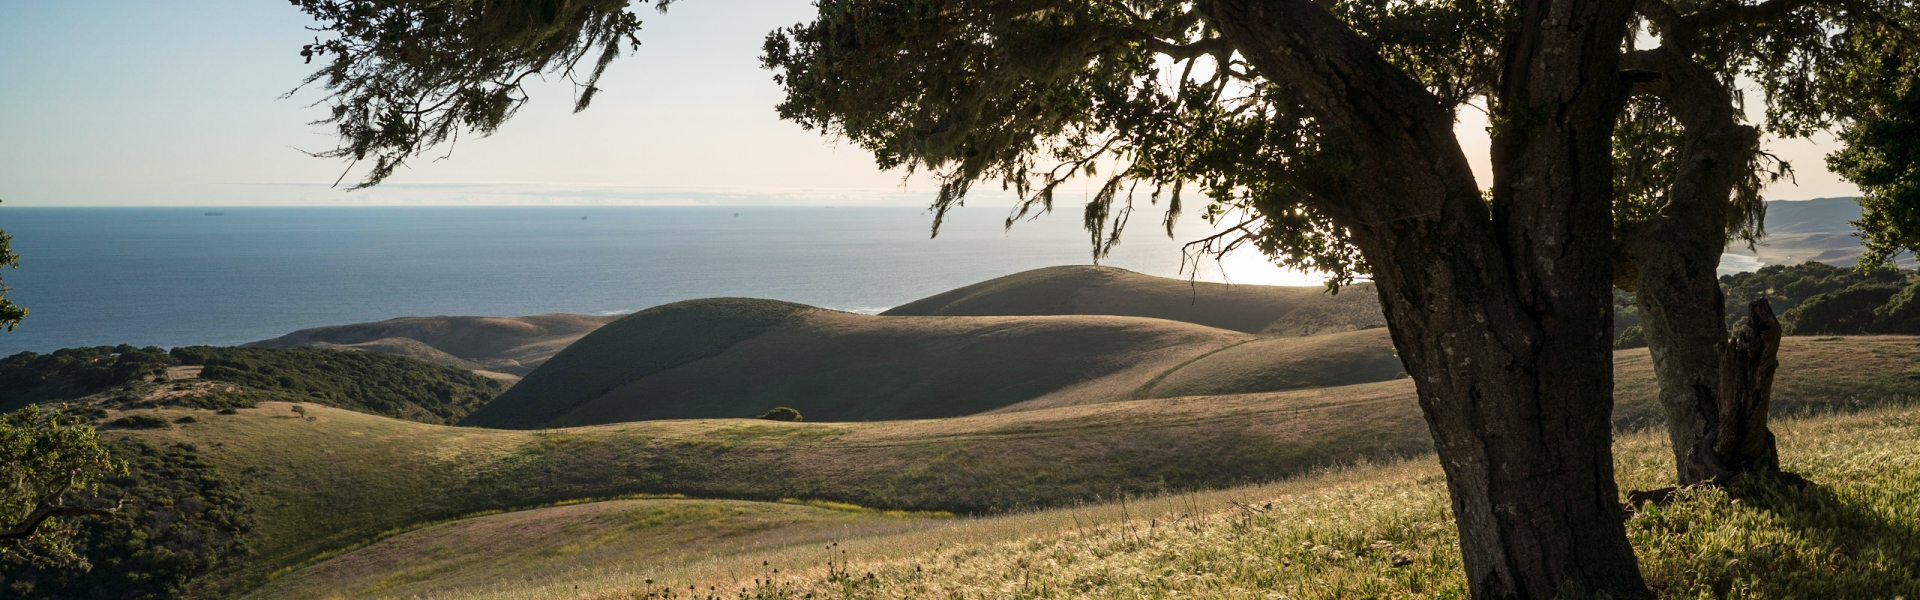 Coast Live Oak stand overlooking Pacific